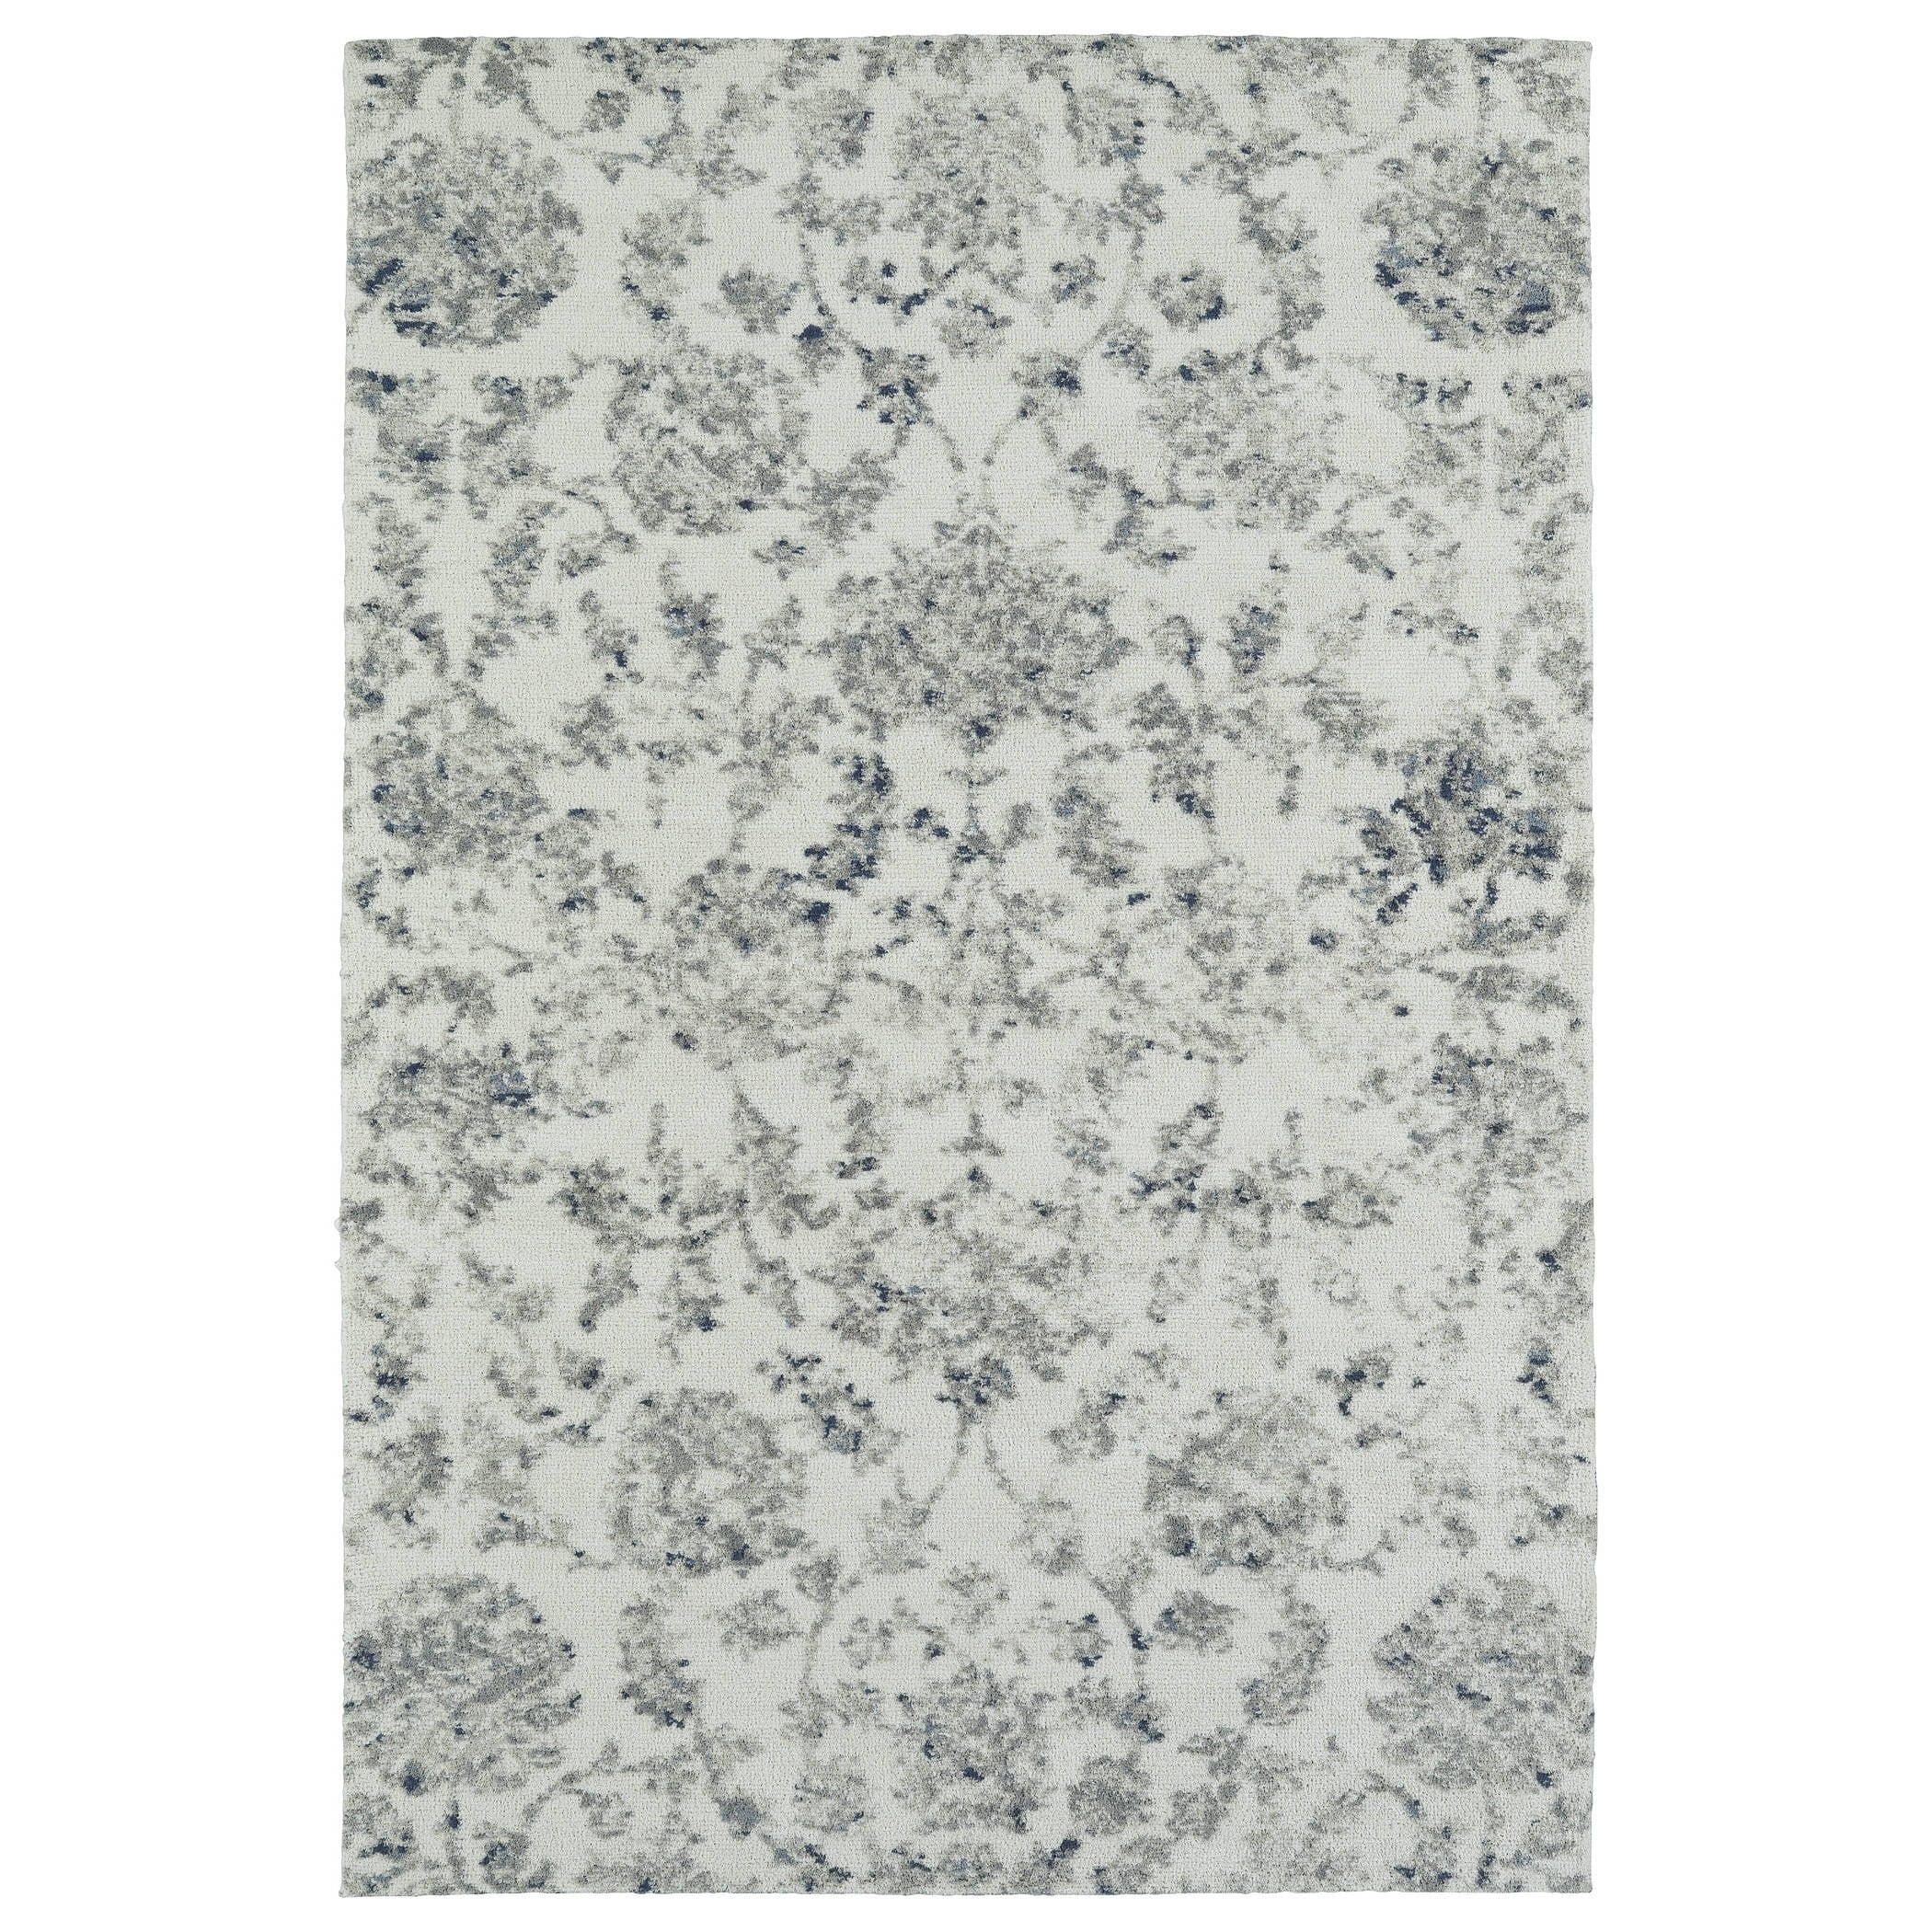 Kaleen Rugs Cozy Toes Collection CTC03-01 Ivory Machine Tufted Rug, 2' x 3'